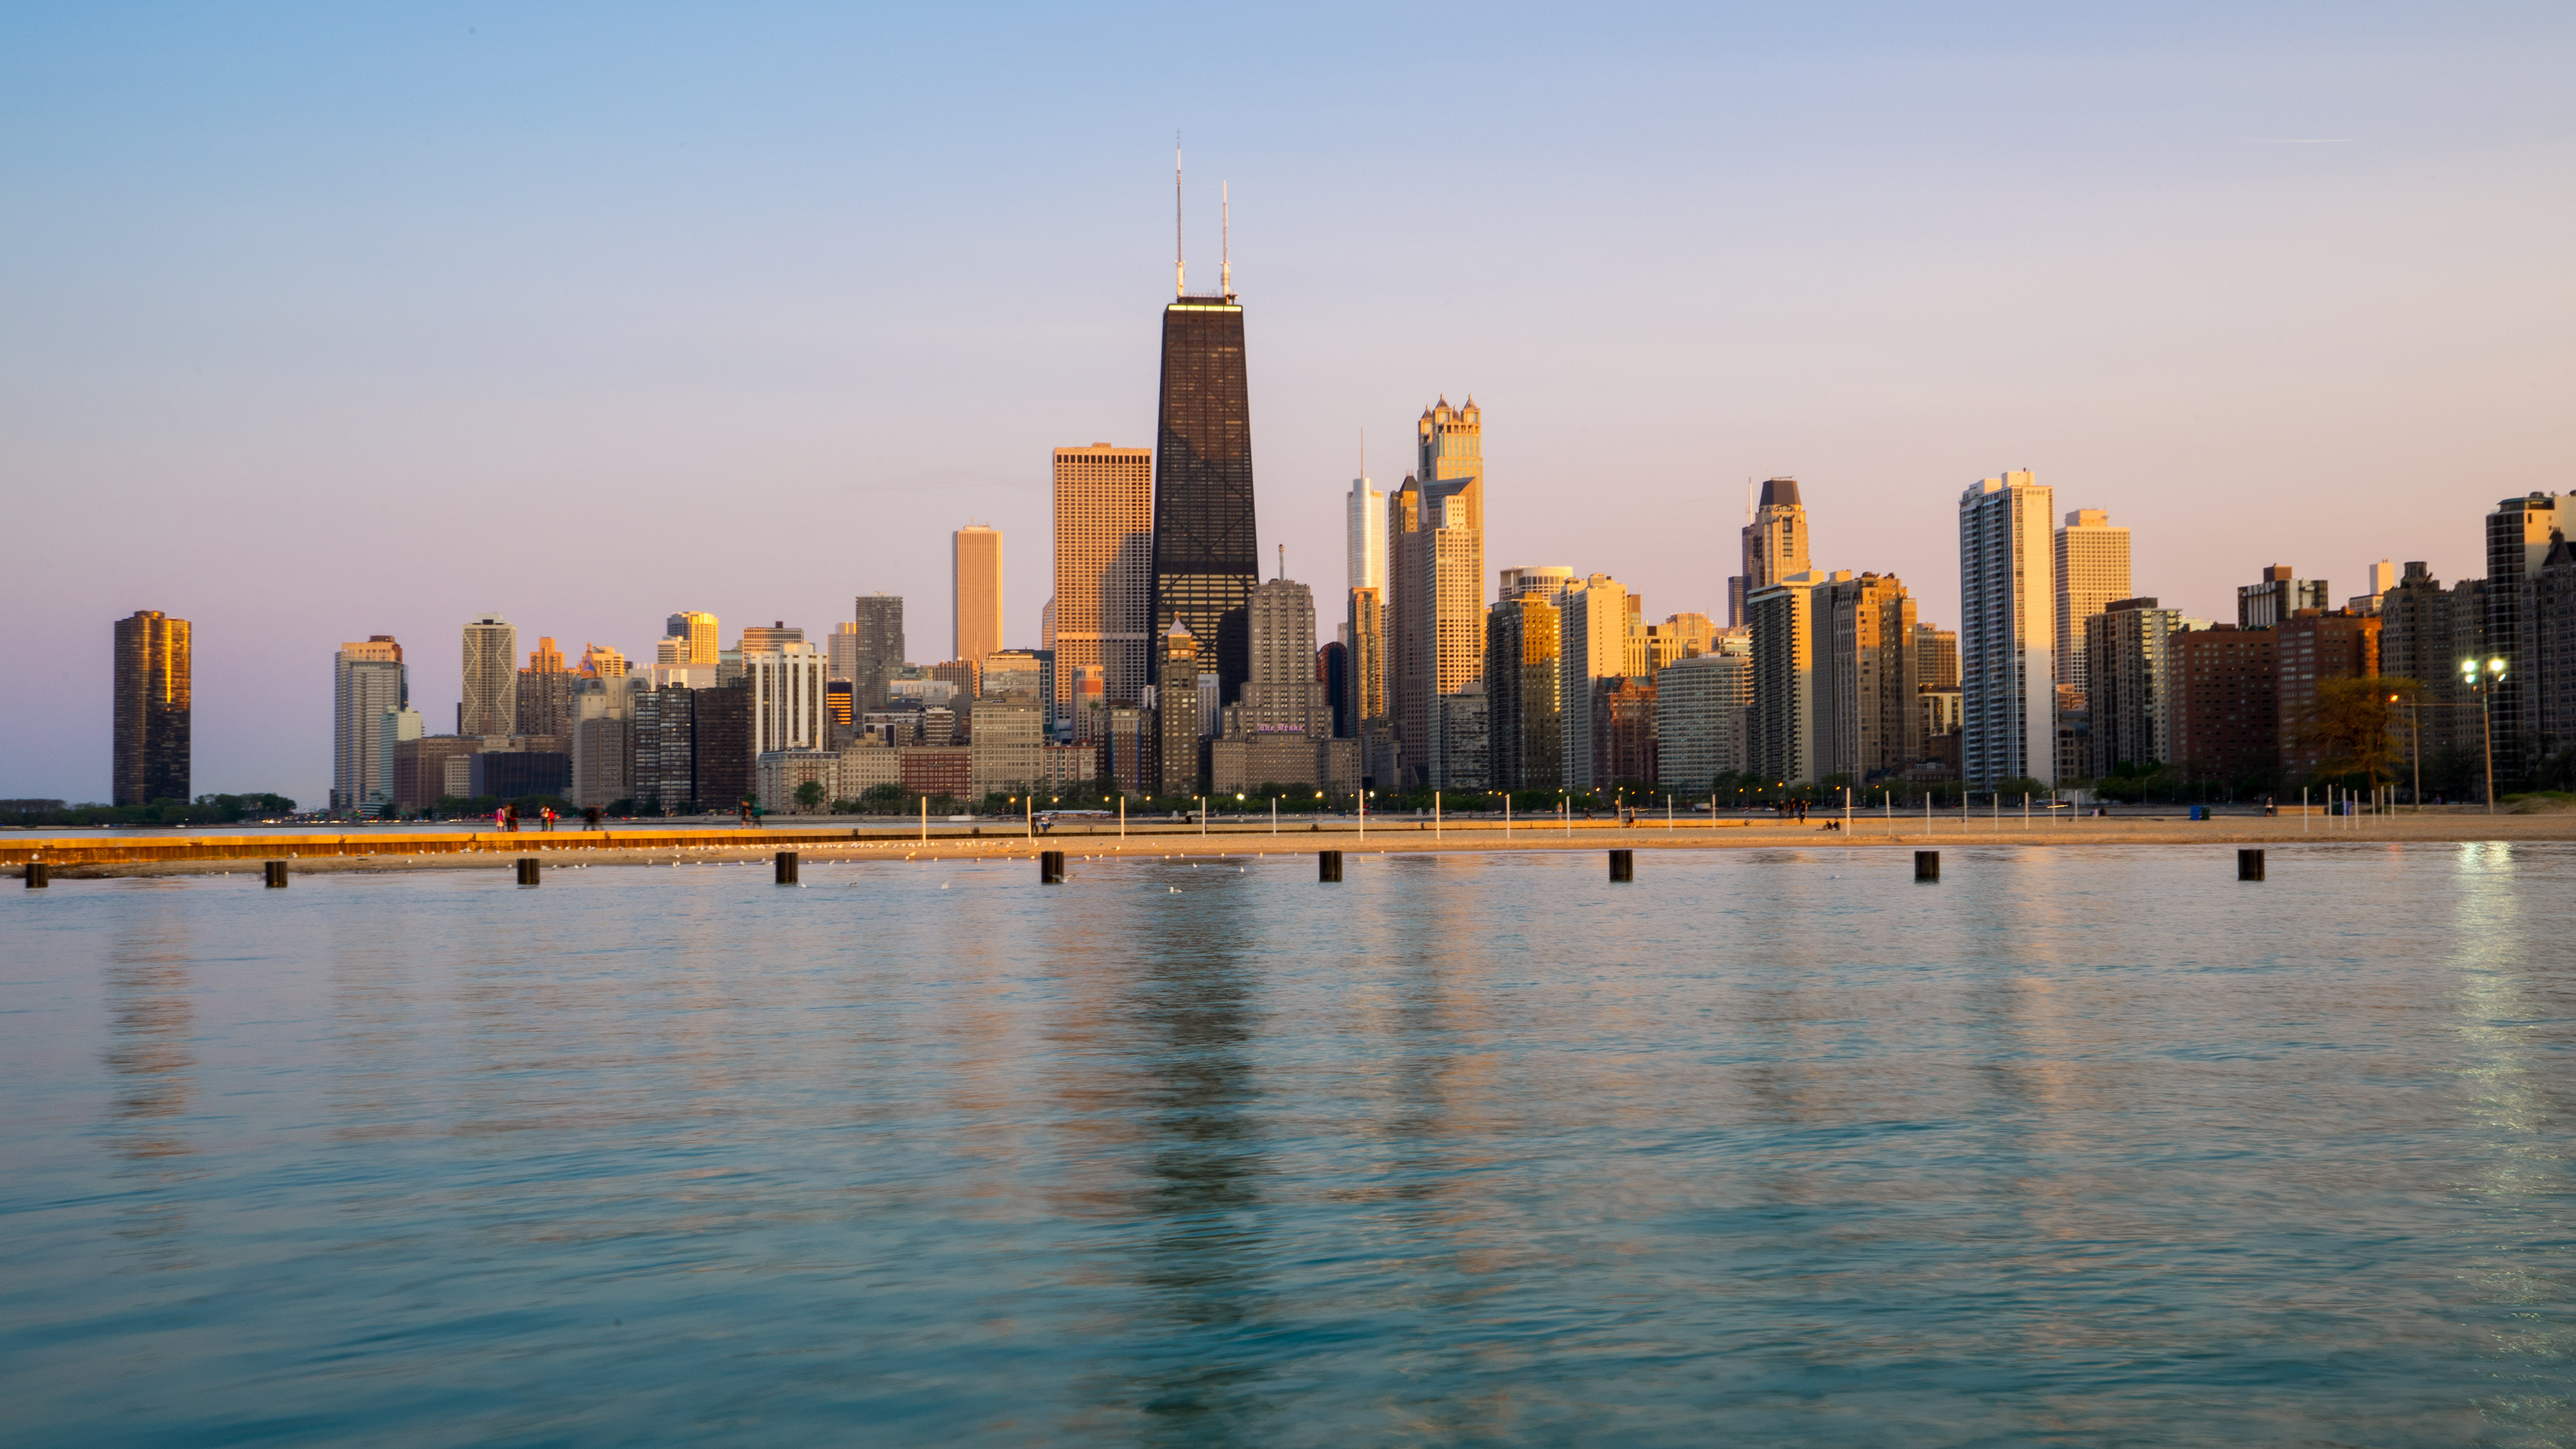 13 Pictures That Will Make You Want To Visit Chicago This Summer